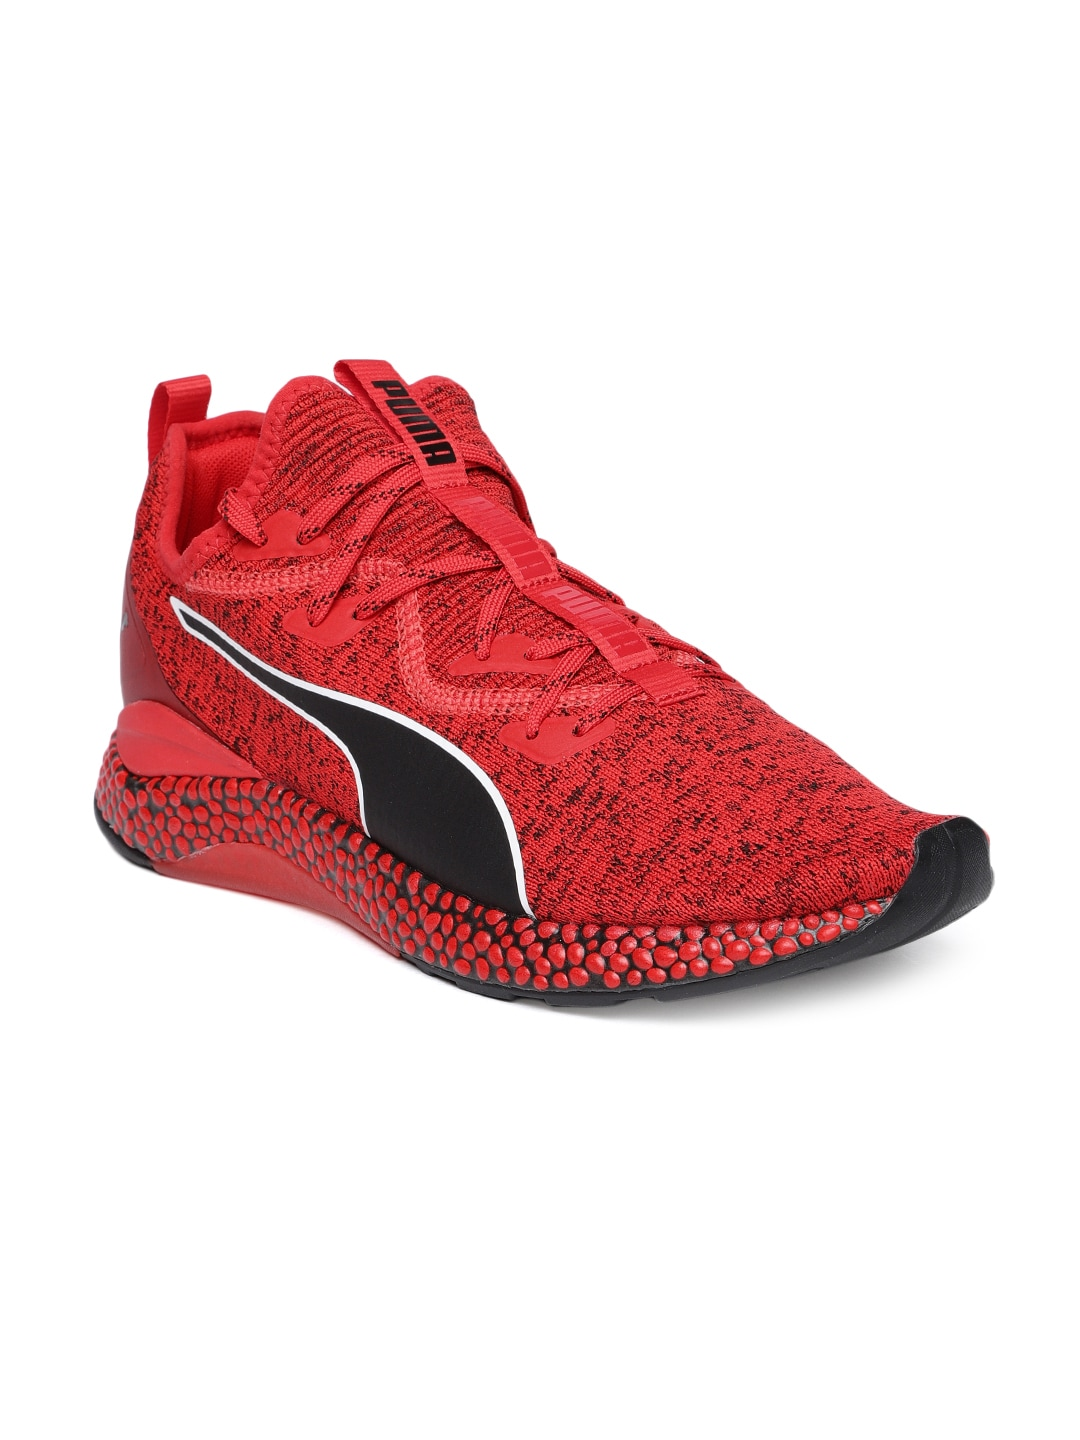 1f12d0b8332b Sports Shoes for Men - Buy Men Sports Shoes Online in India - Myntra